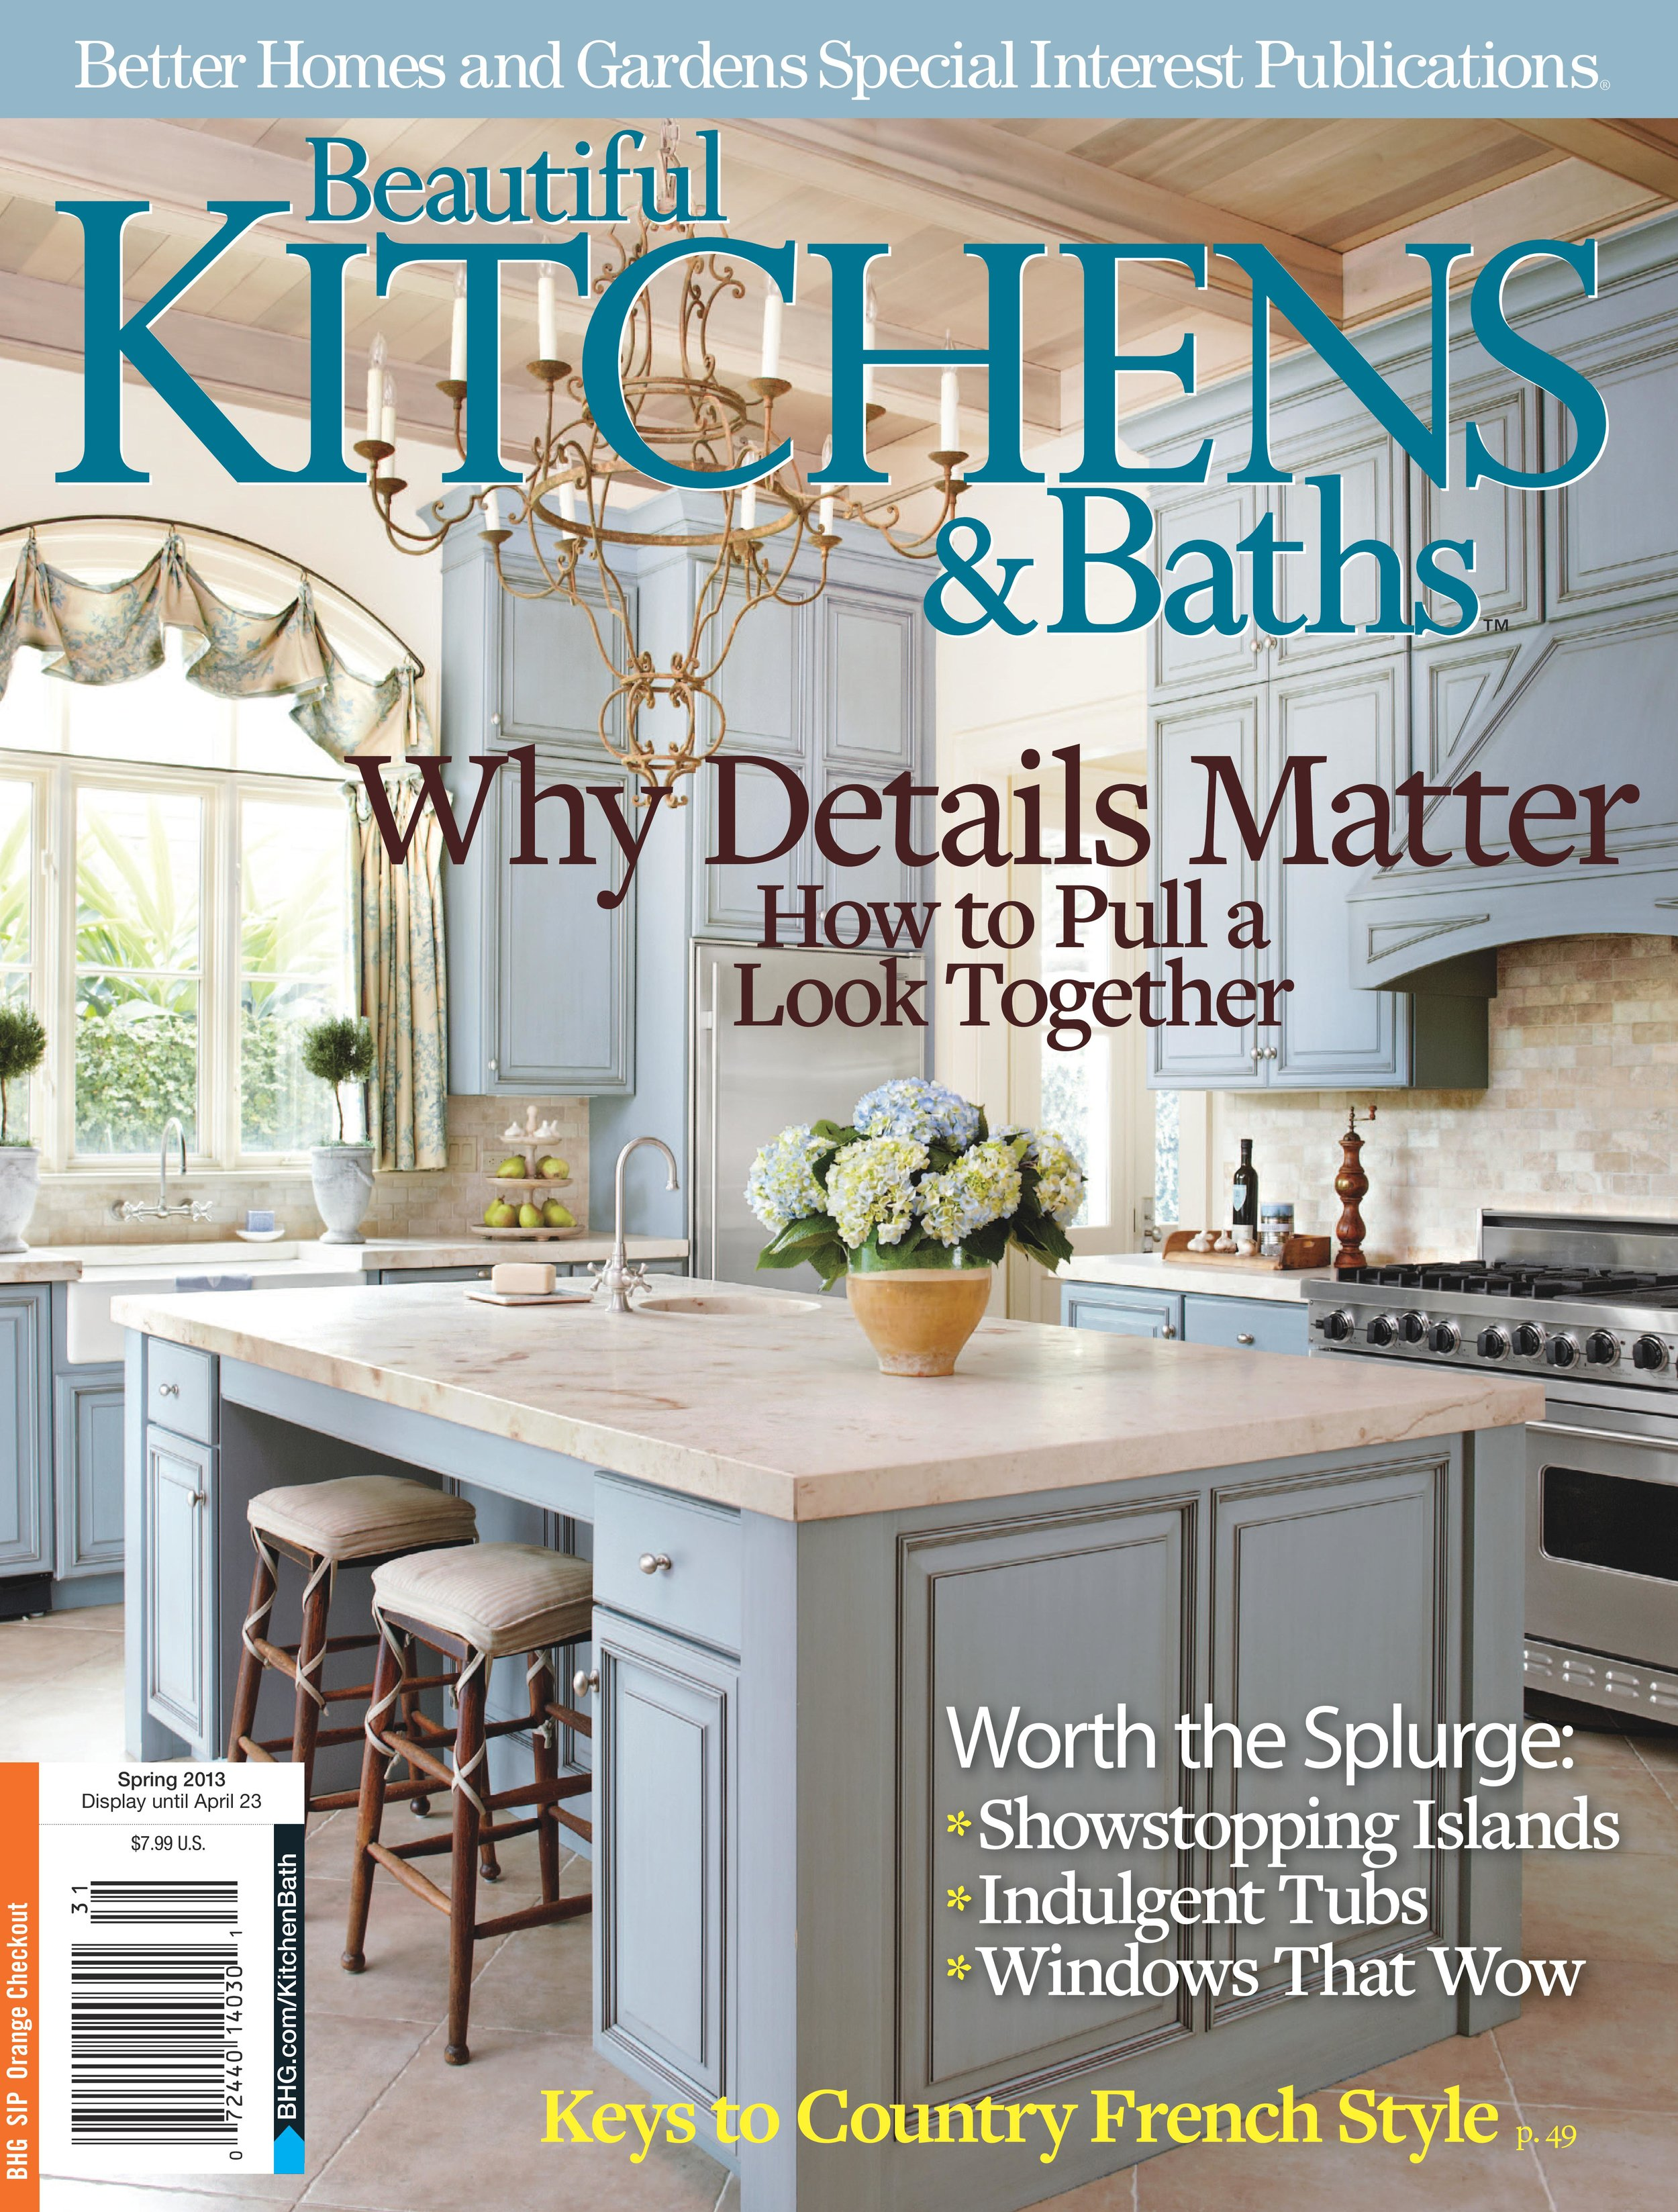 fEATURED: - This kitchen was featured in the 2013 Spring issue of Beautiful Kitchens and Baths. If you'd like to view the article, please click here.